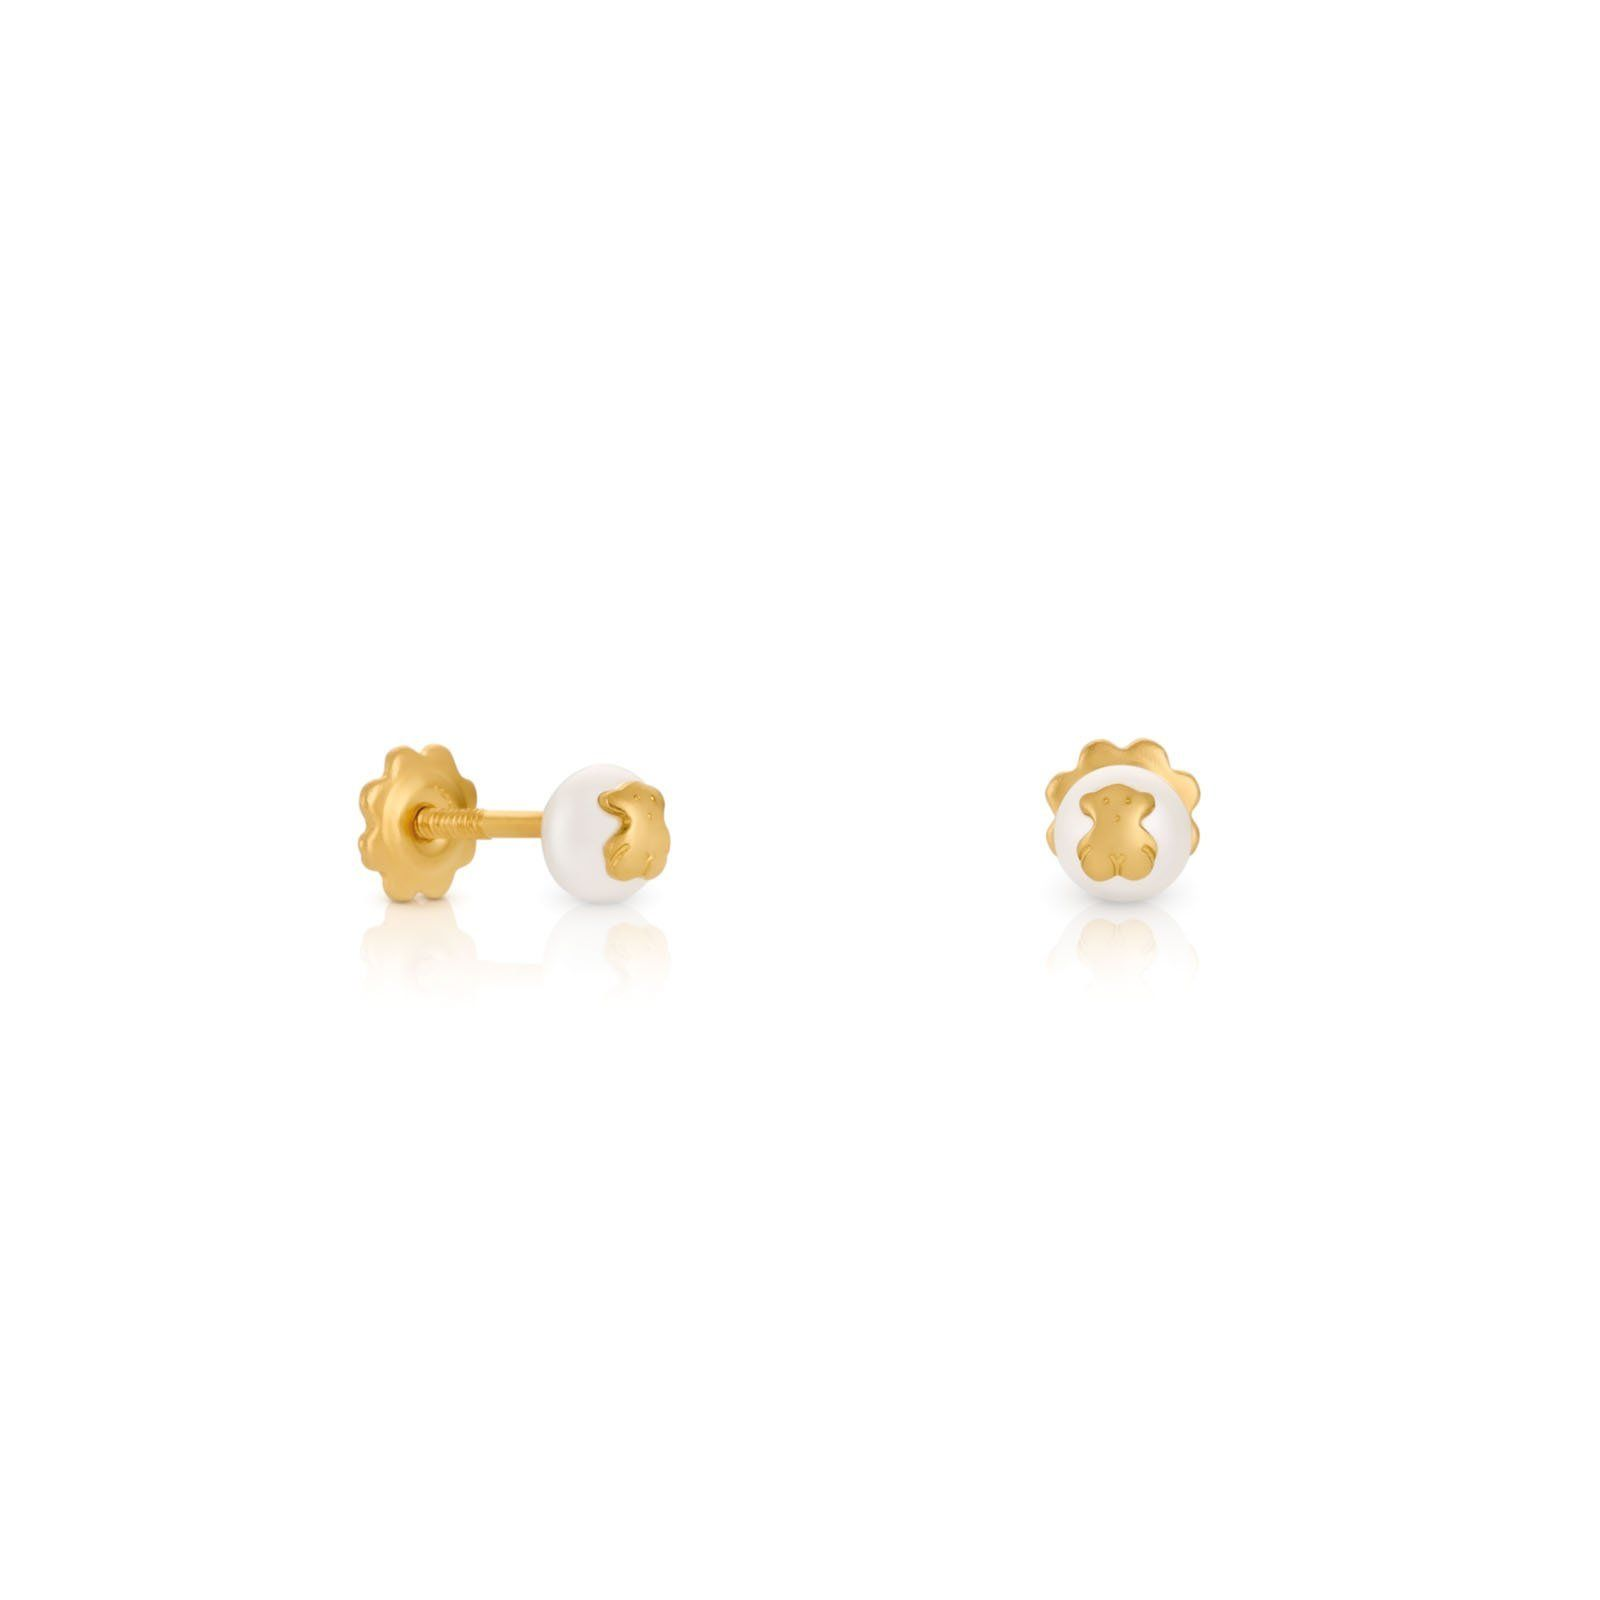 Gold Baby TOUS Earrings with Pearl | Bears, Babies and ...